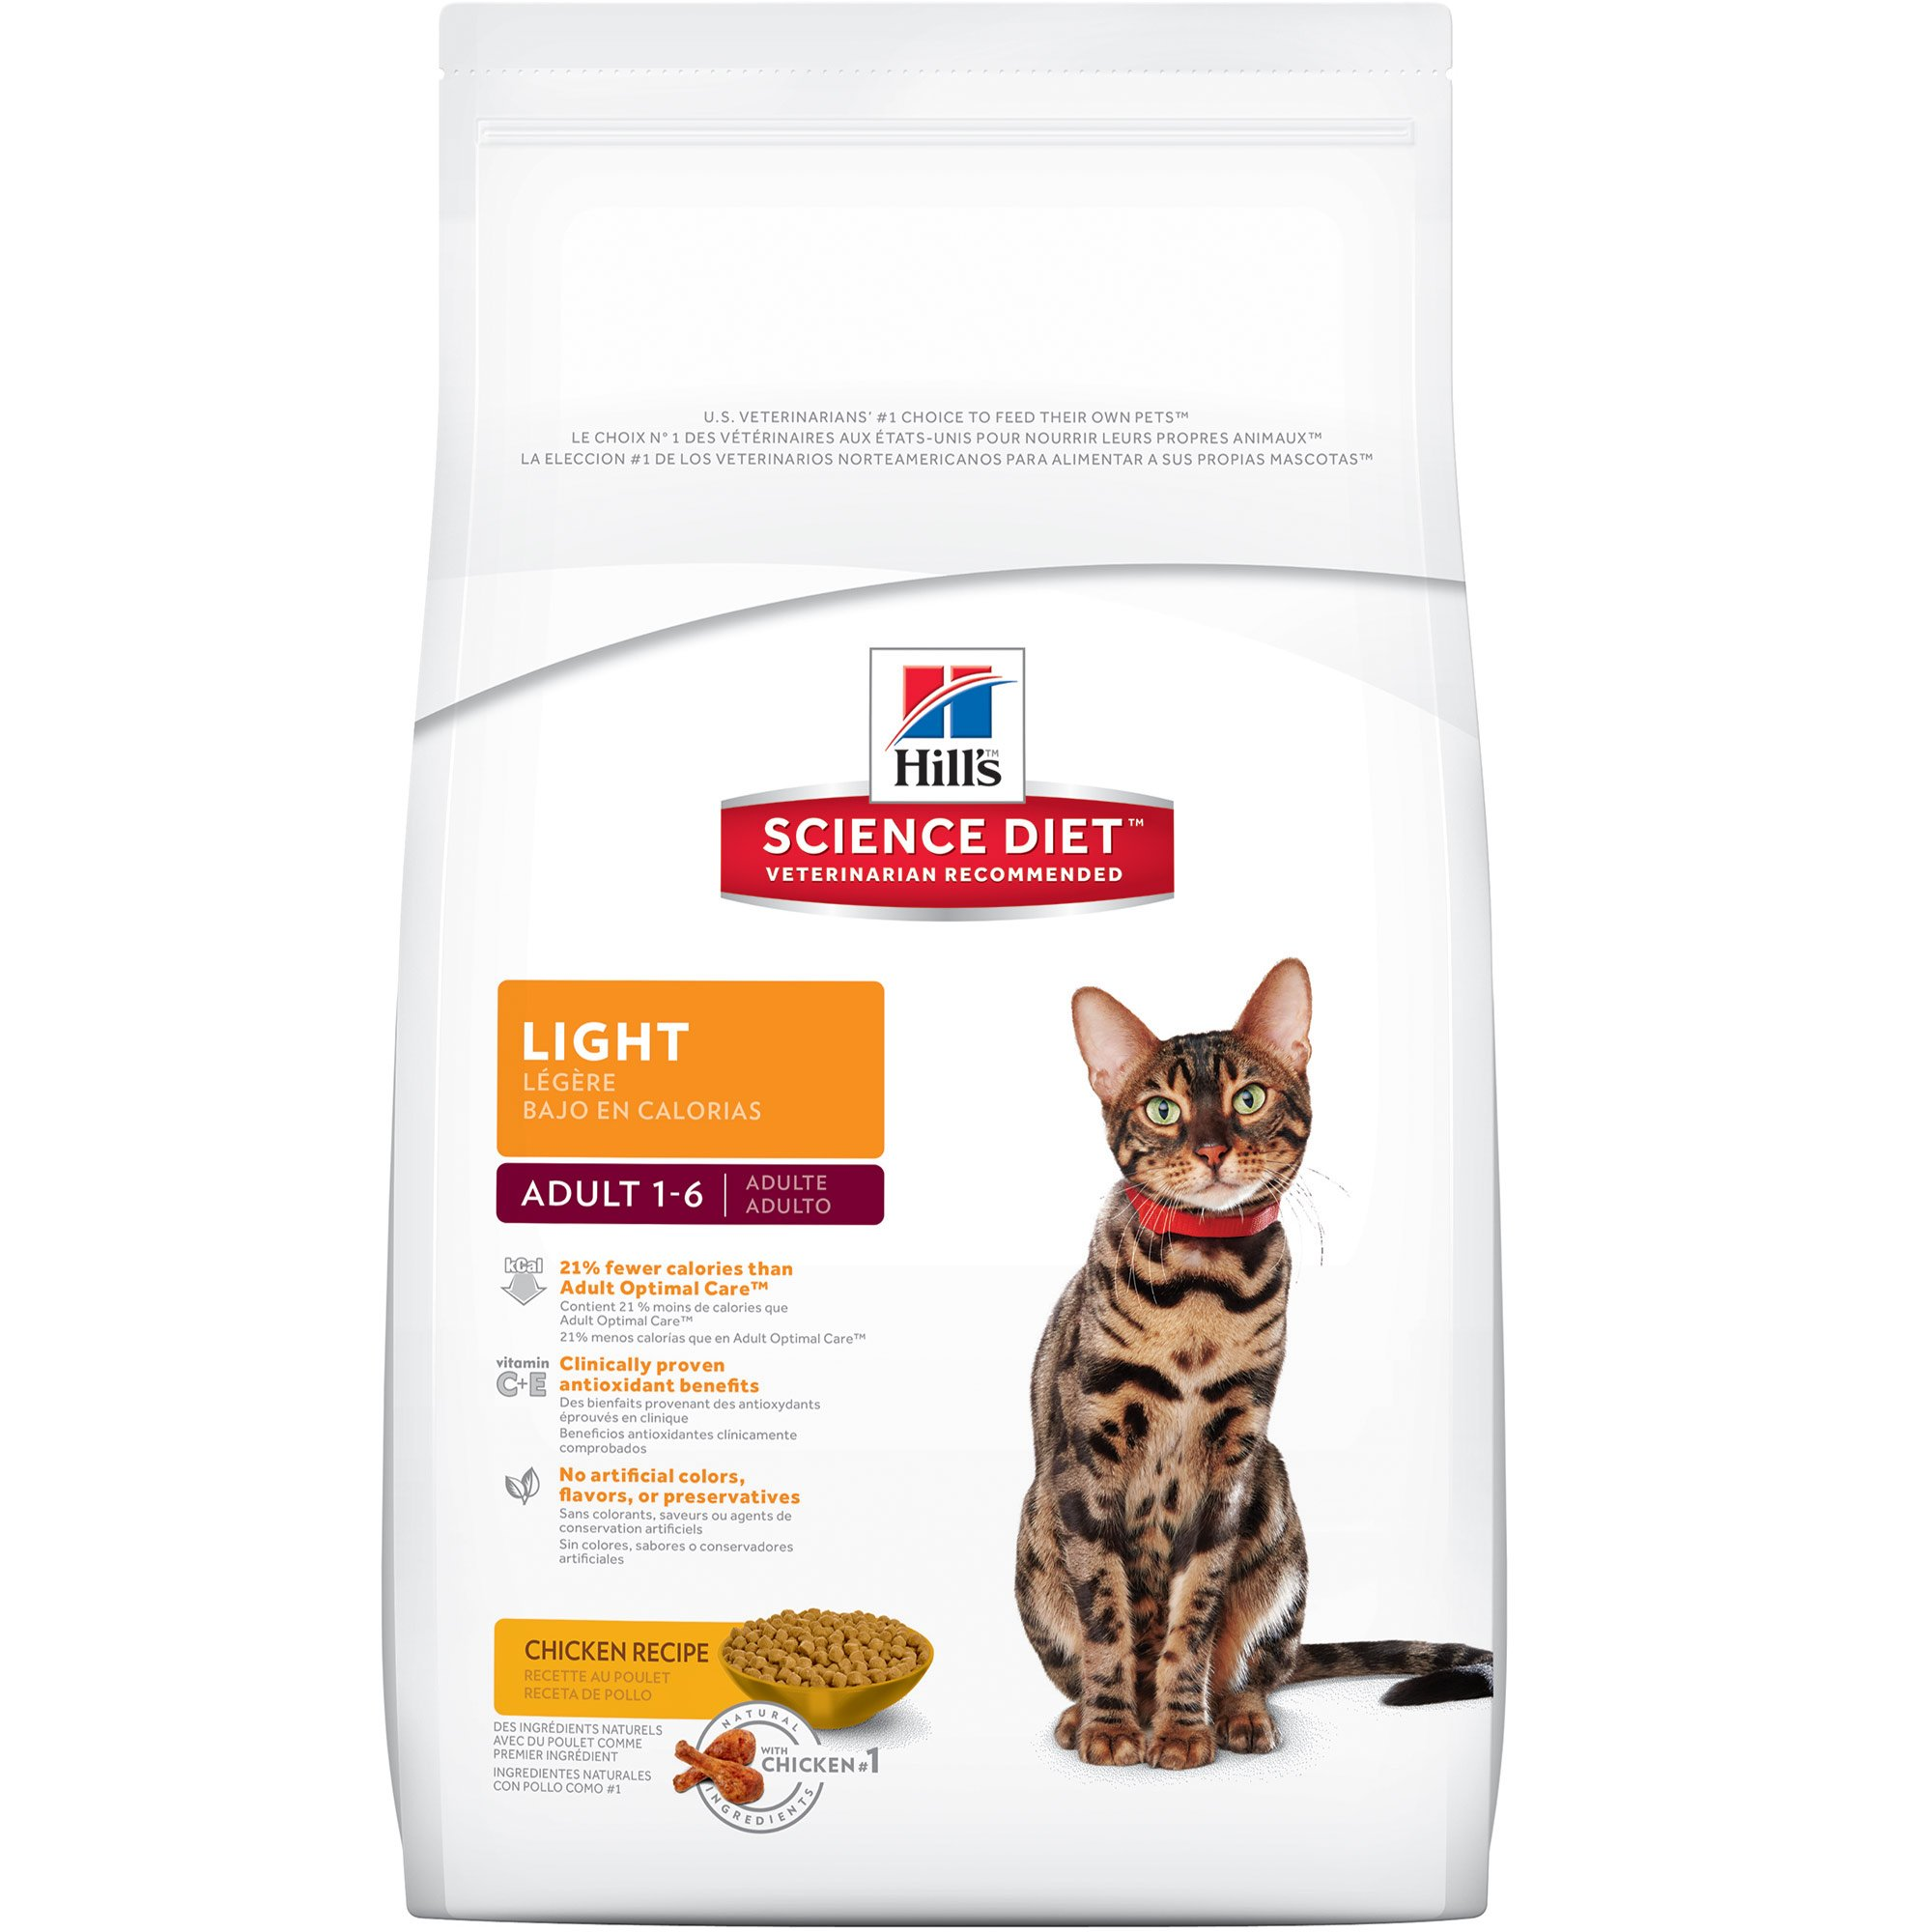 Hill's Science Diet Cat Food for Healthy Weight and Weight Management